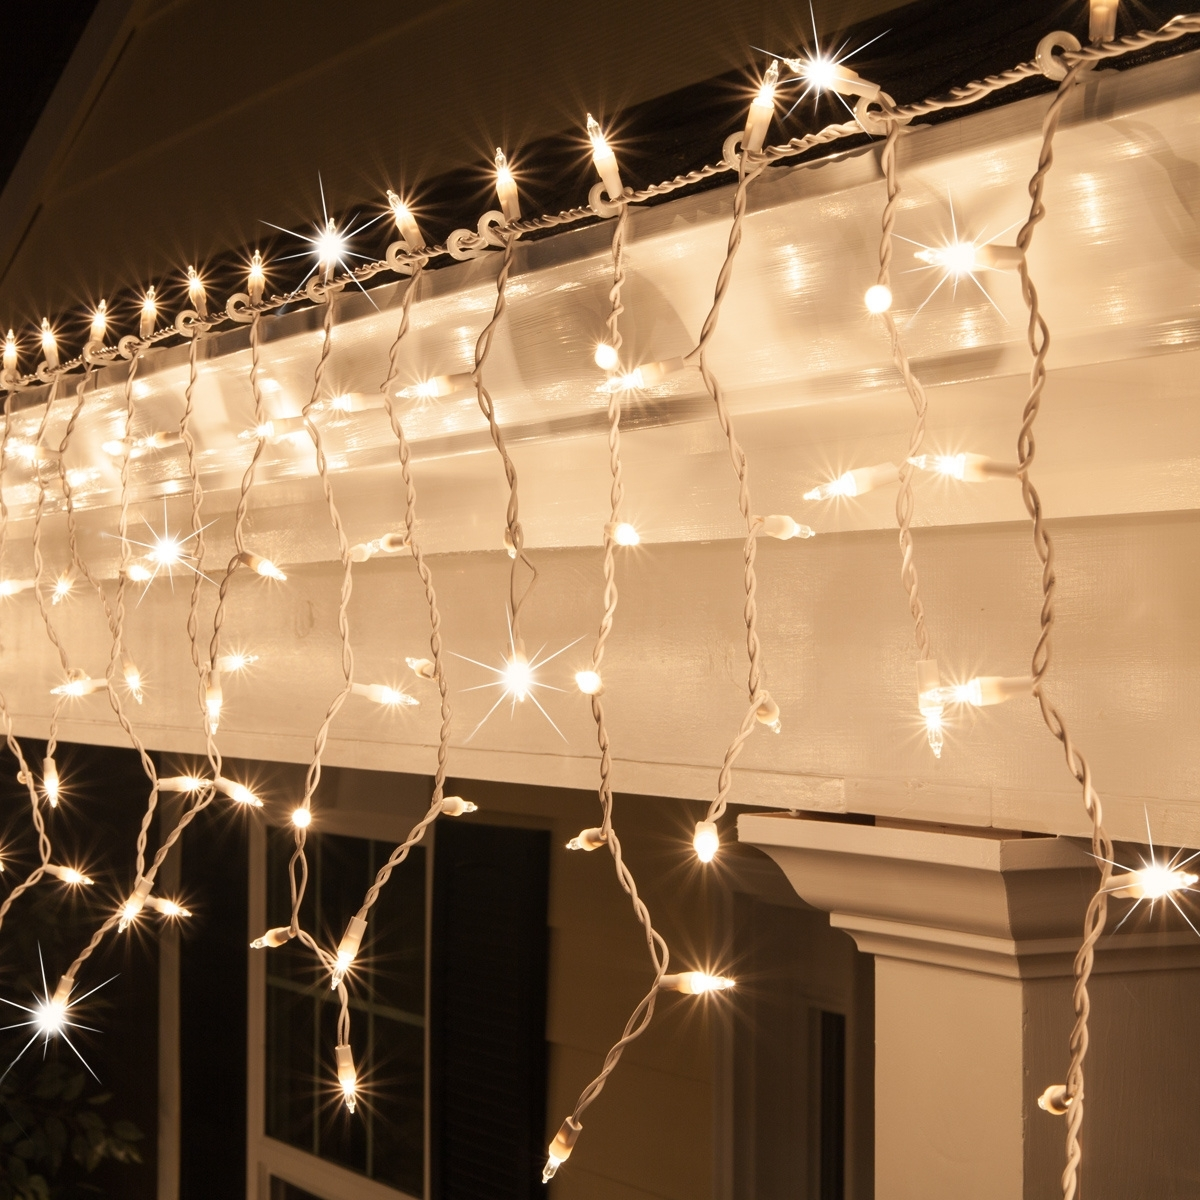 Fashionable Christmas Icicle Light – 150 Clear Twinkle Icicle Lights – White Wire In Hanging Outdoor Holiday Lights (View 6 of 20)